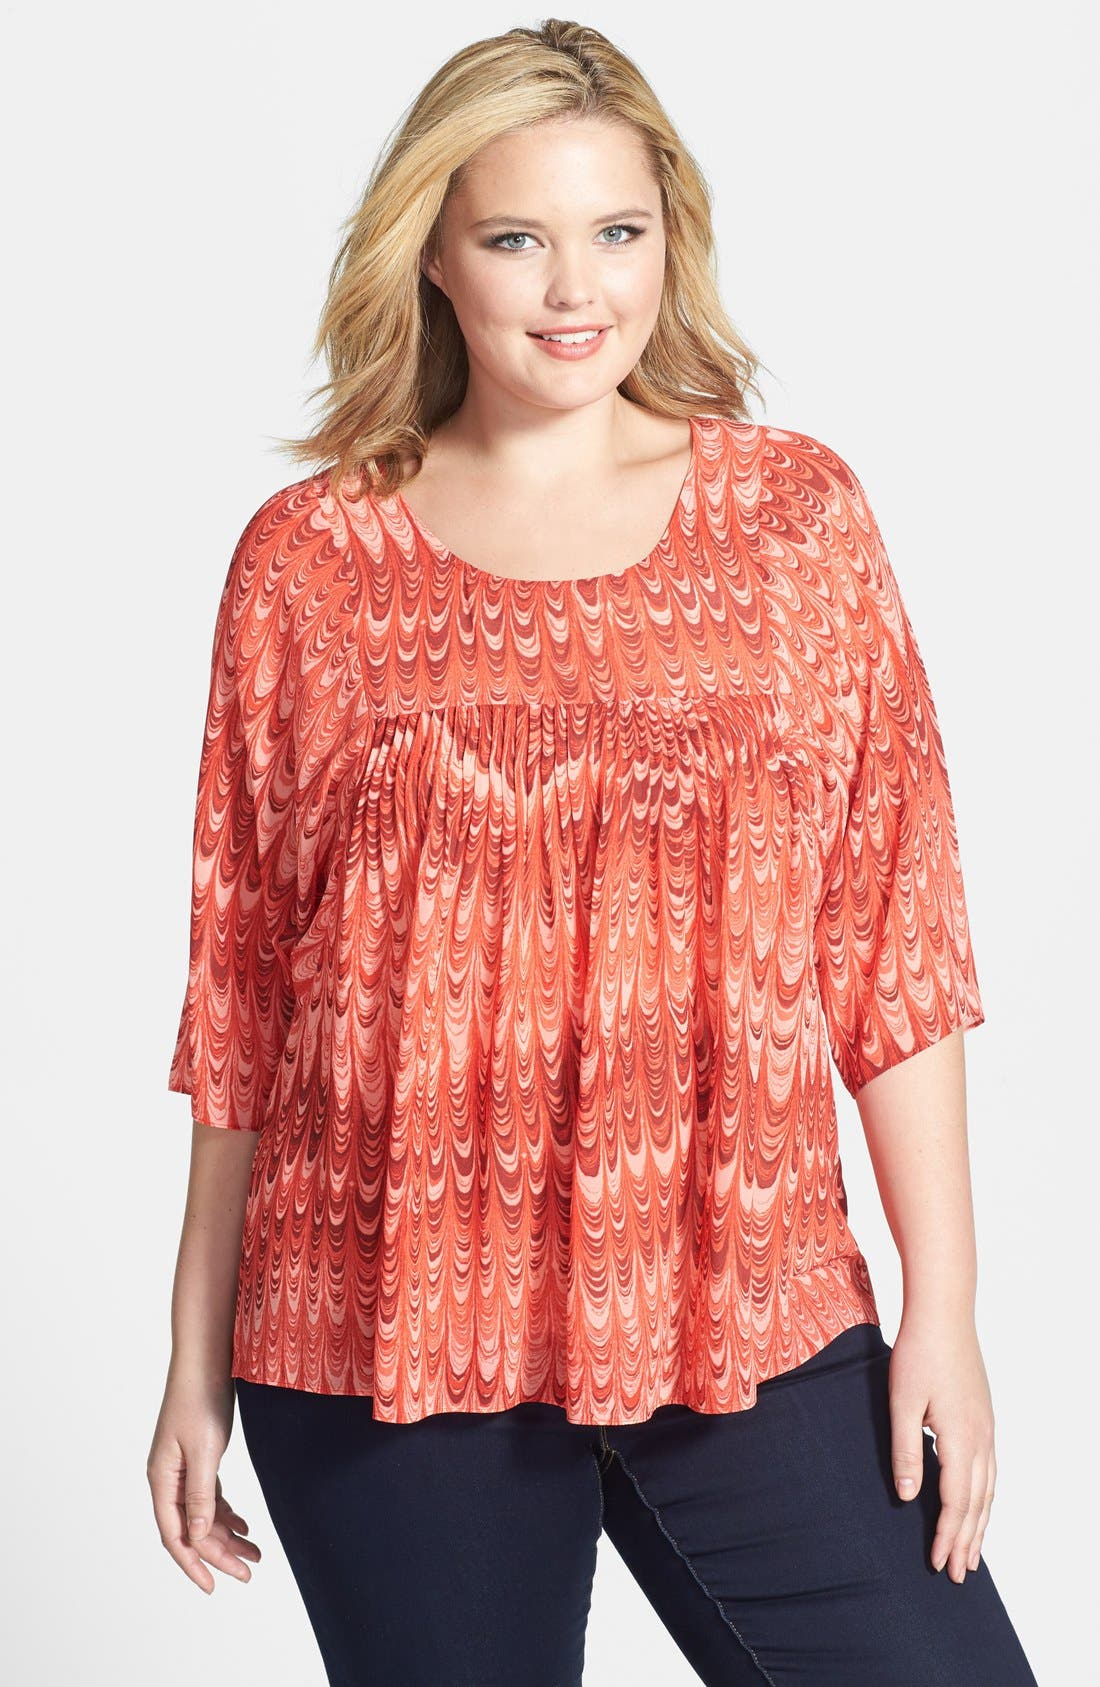 Alternate Image 1 Selected - MICHAEL Michael Kors 'Paper' Flowy Top (Plus Size)